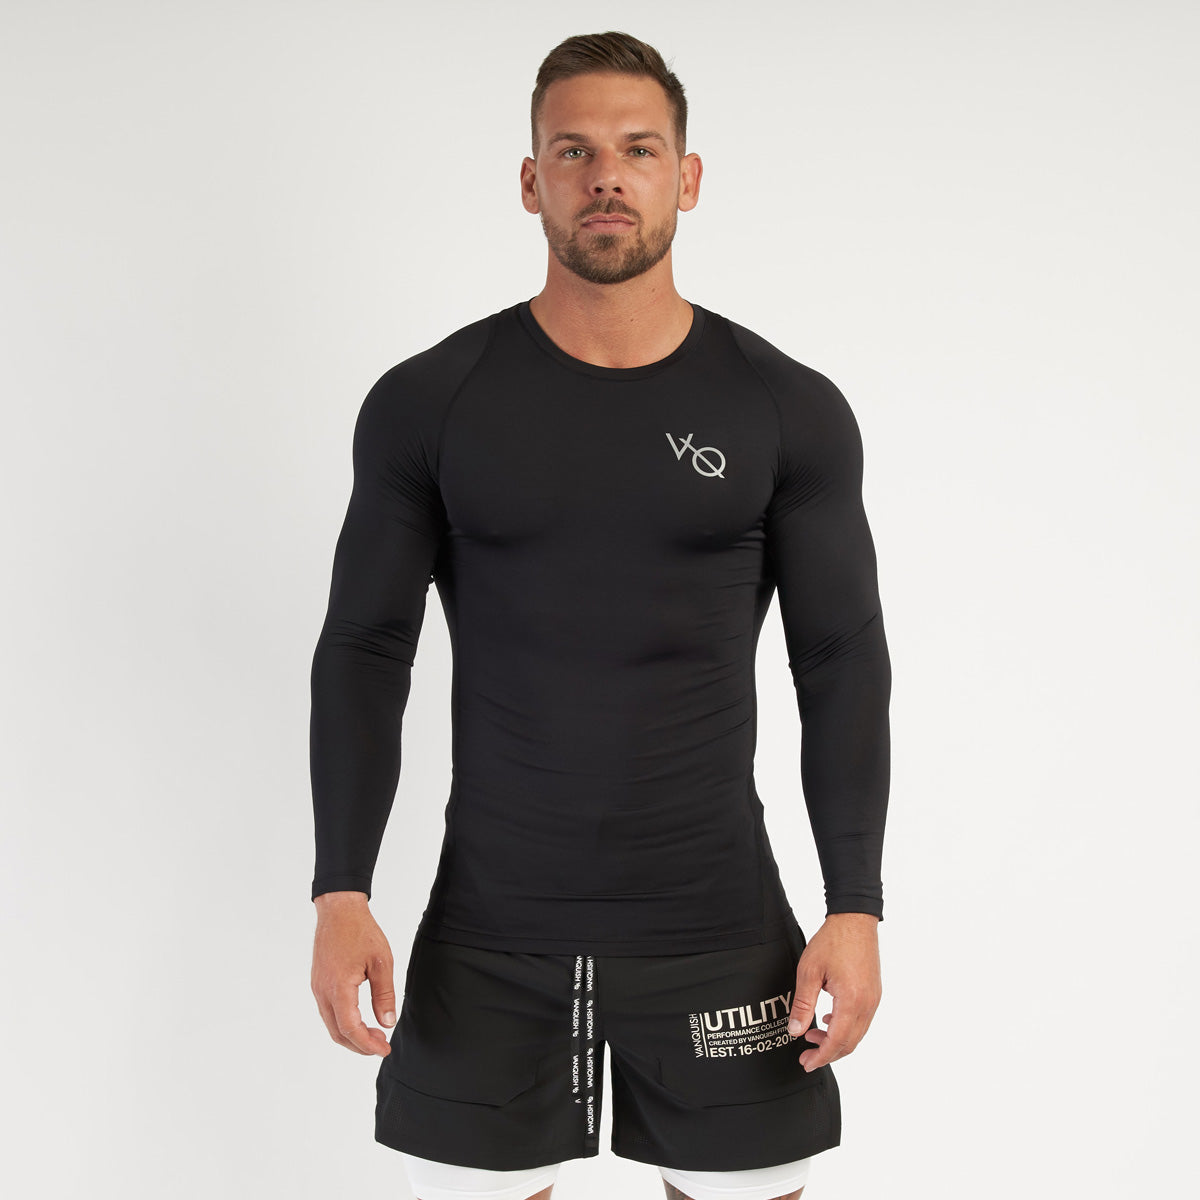 Vanquish Utility Men's Black Long Sleeved Compression T Shirt